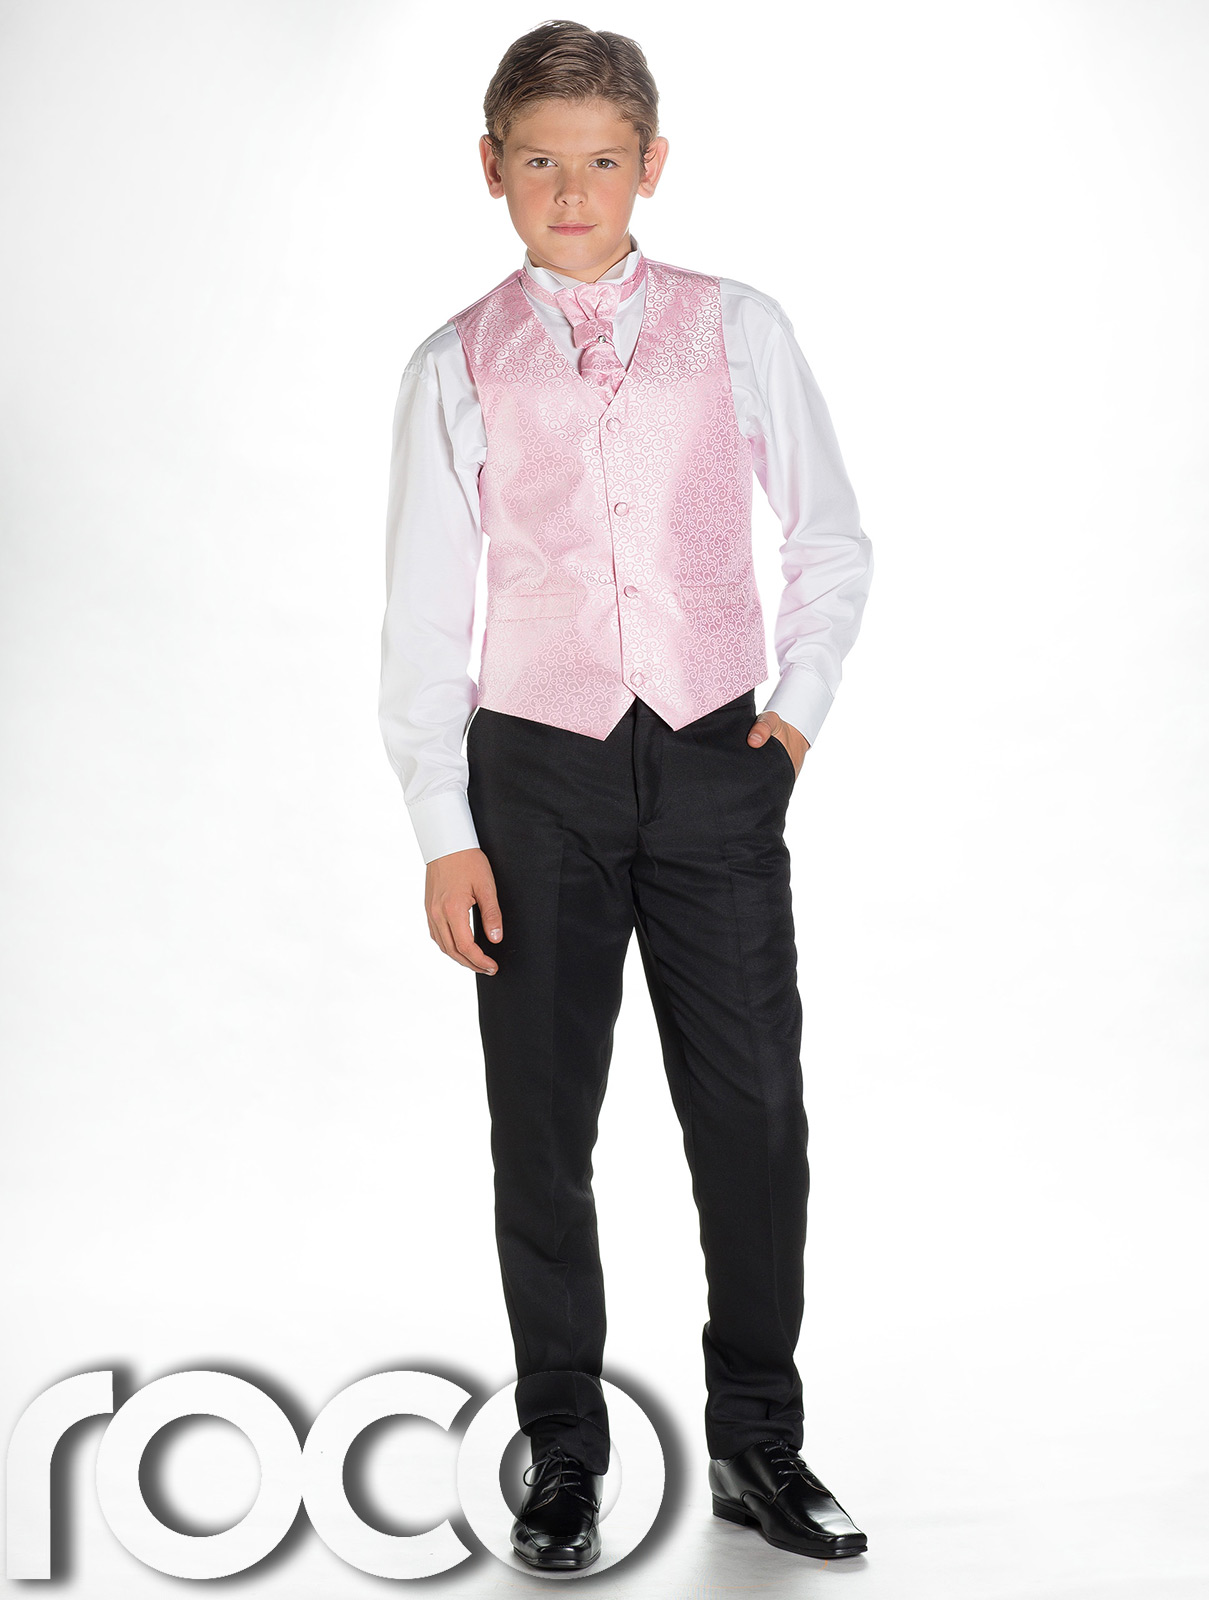 18af9bc015e5 Details about Boys Pink & Black Suit, Page Boy Suits, Boys Wedding Suits, Boys  Suits, Swirl